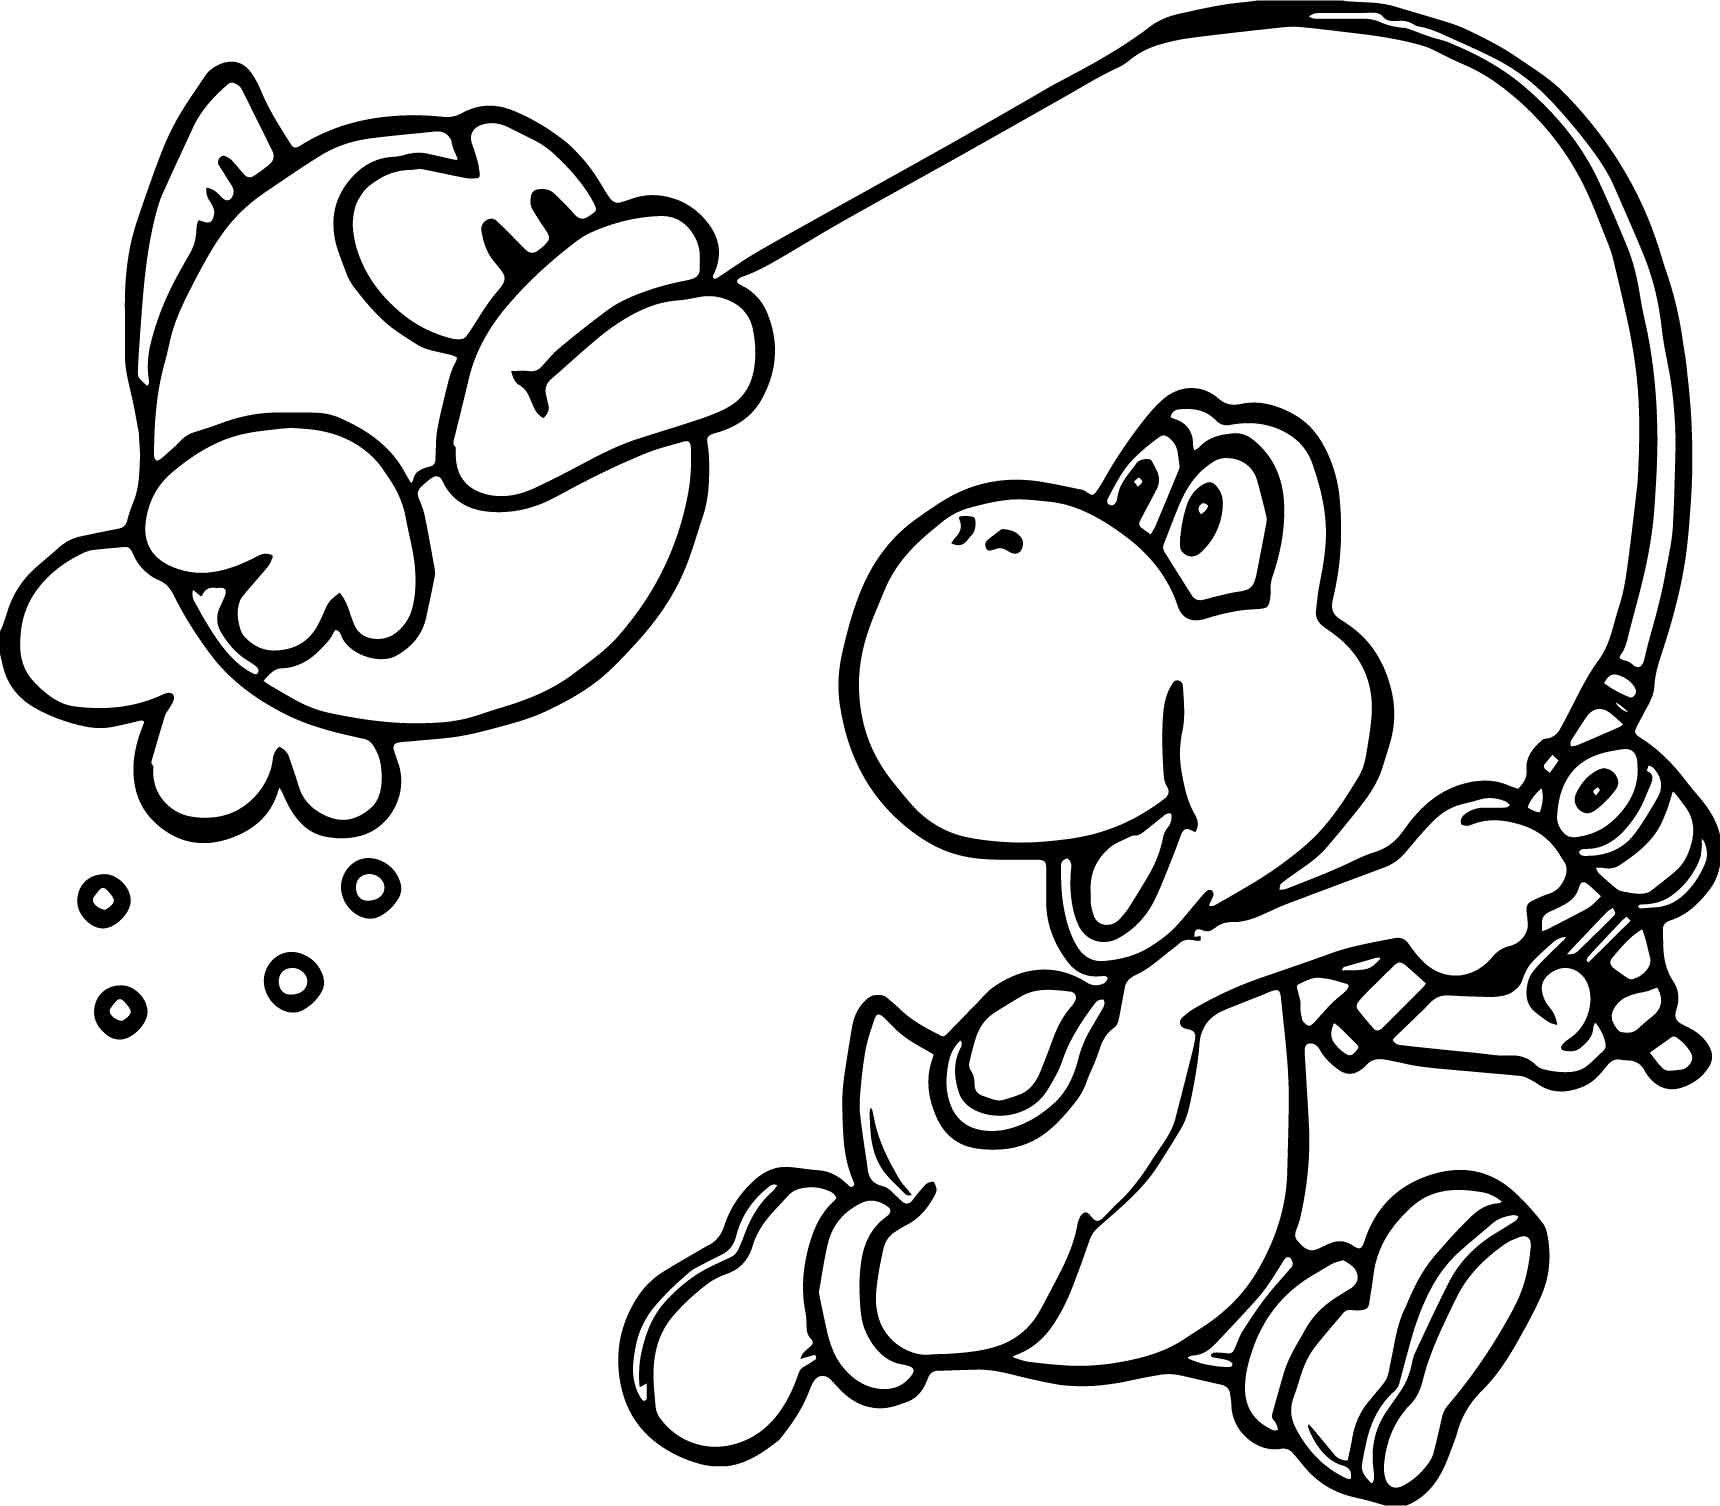 - Coloriage Yoshi Wooly World Fish Coloring Page, Mario Coloring Pages